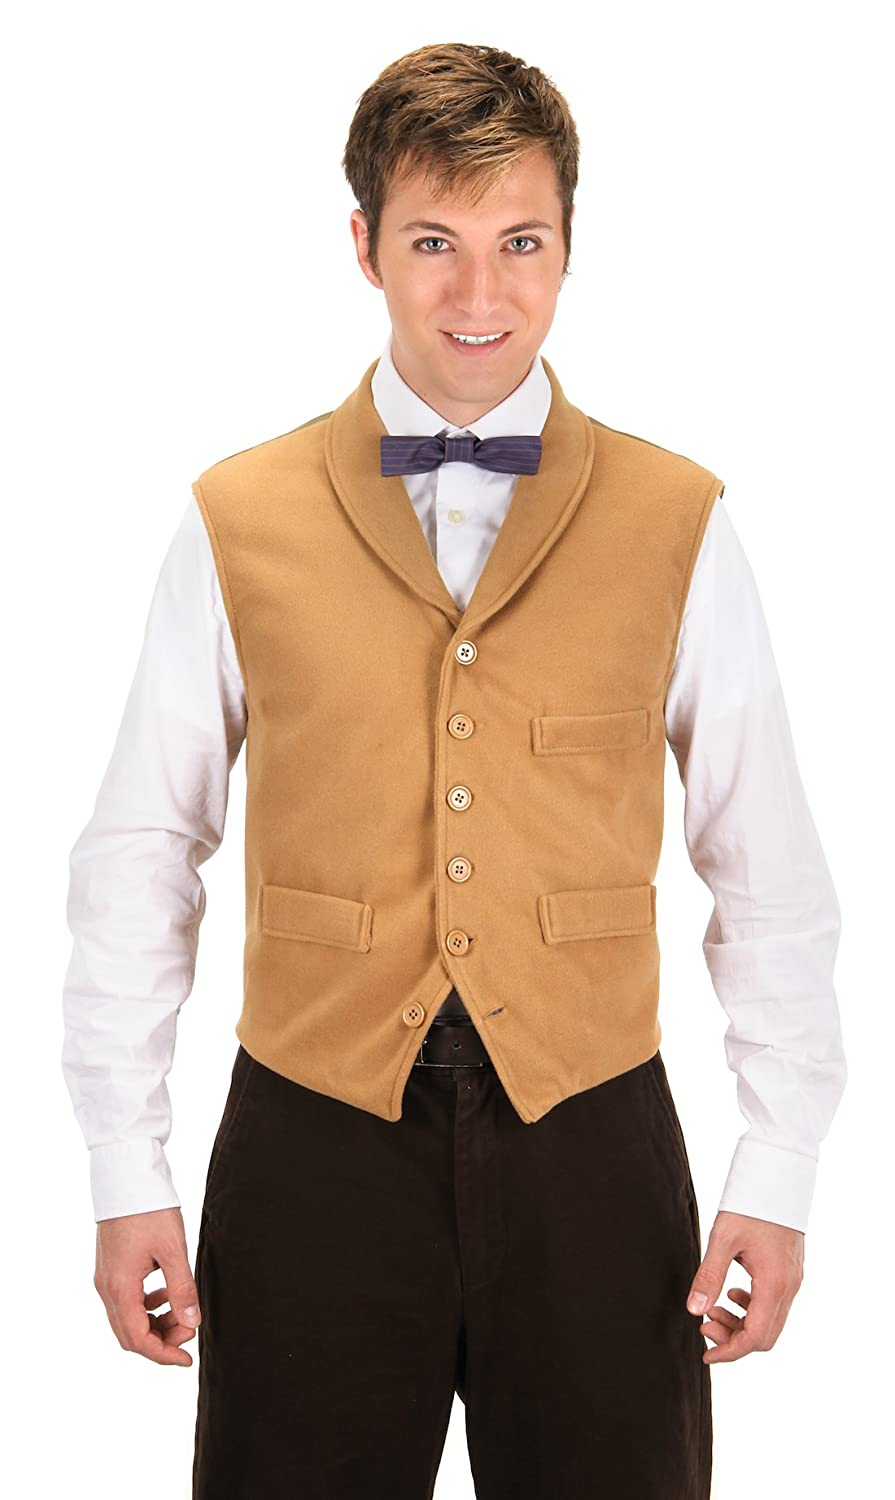 Men's Vintage Vests, Sweater Vests Fantastic Beasts and Where to Find Them Newt Scamander Vest by elope $34.99 AT vintagedancer.com